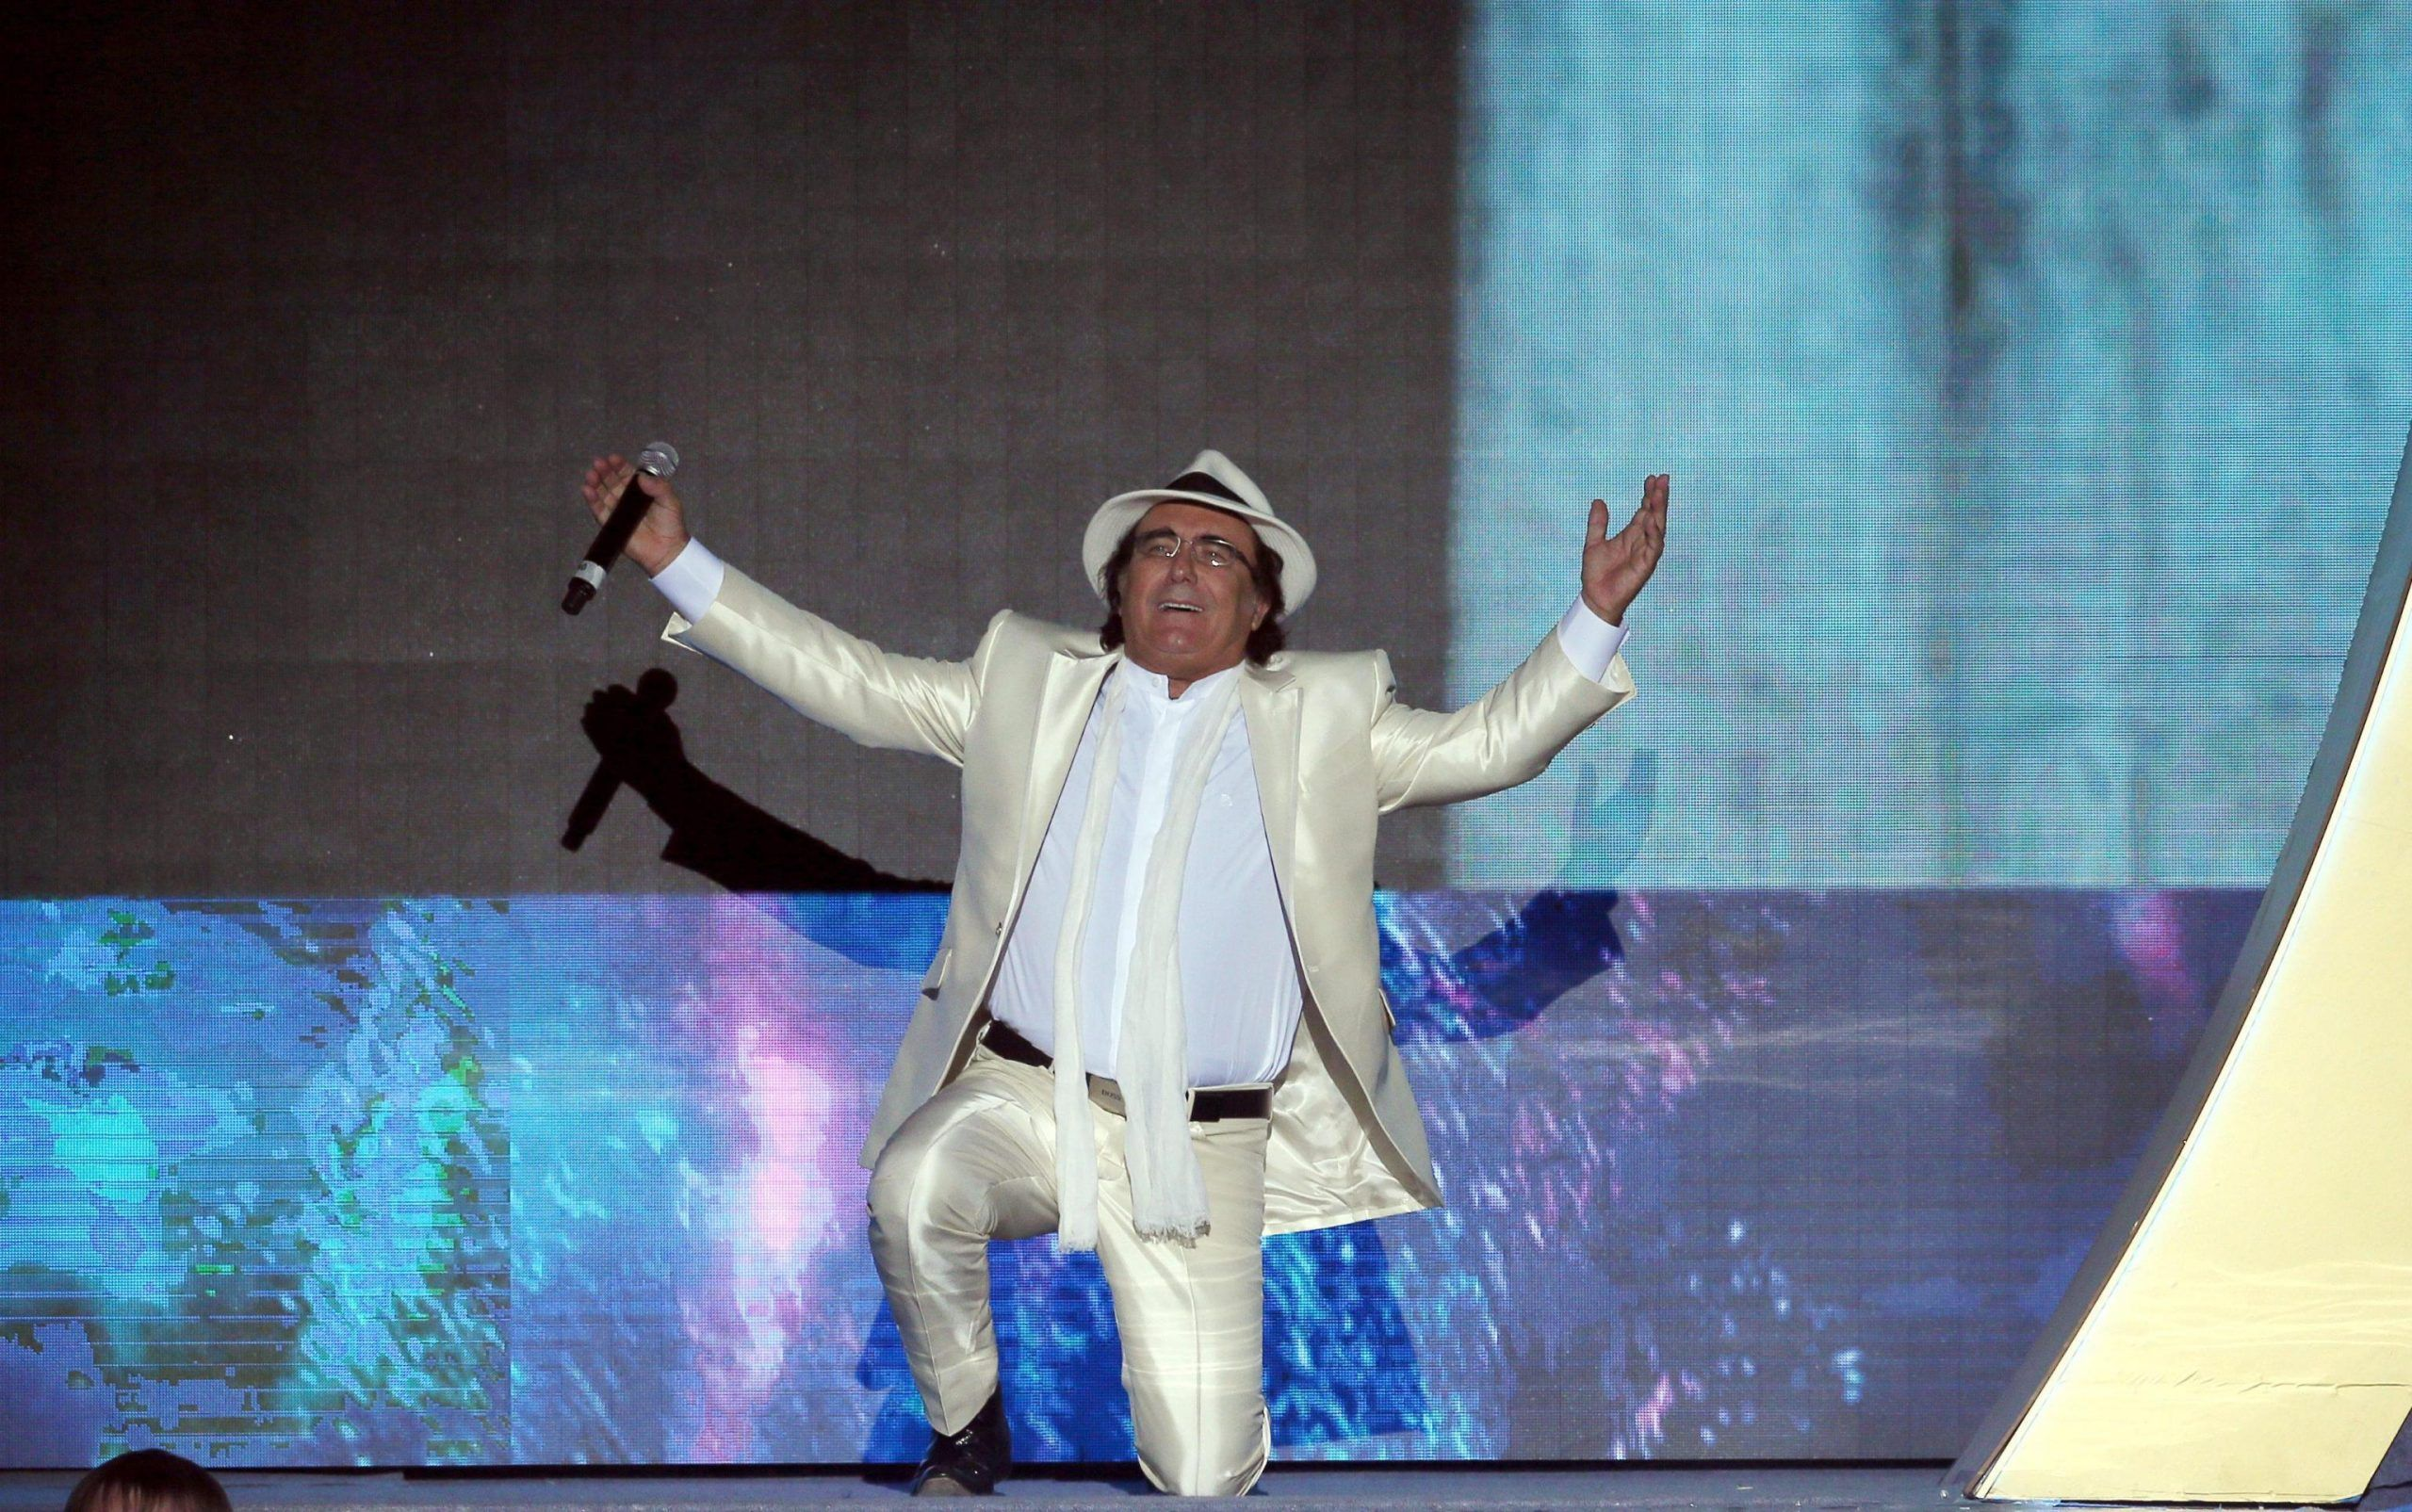 Italian singer Al Bano Carrisi performs in Moscow